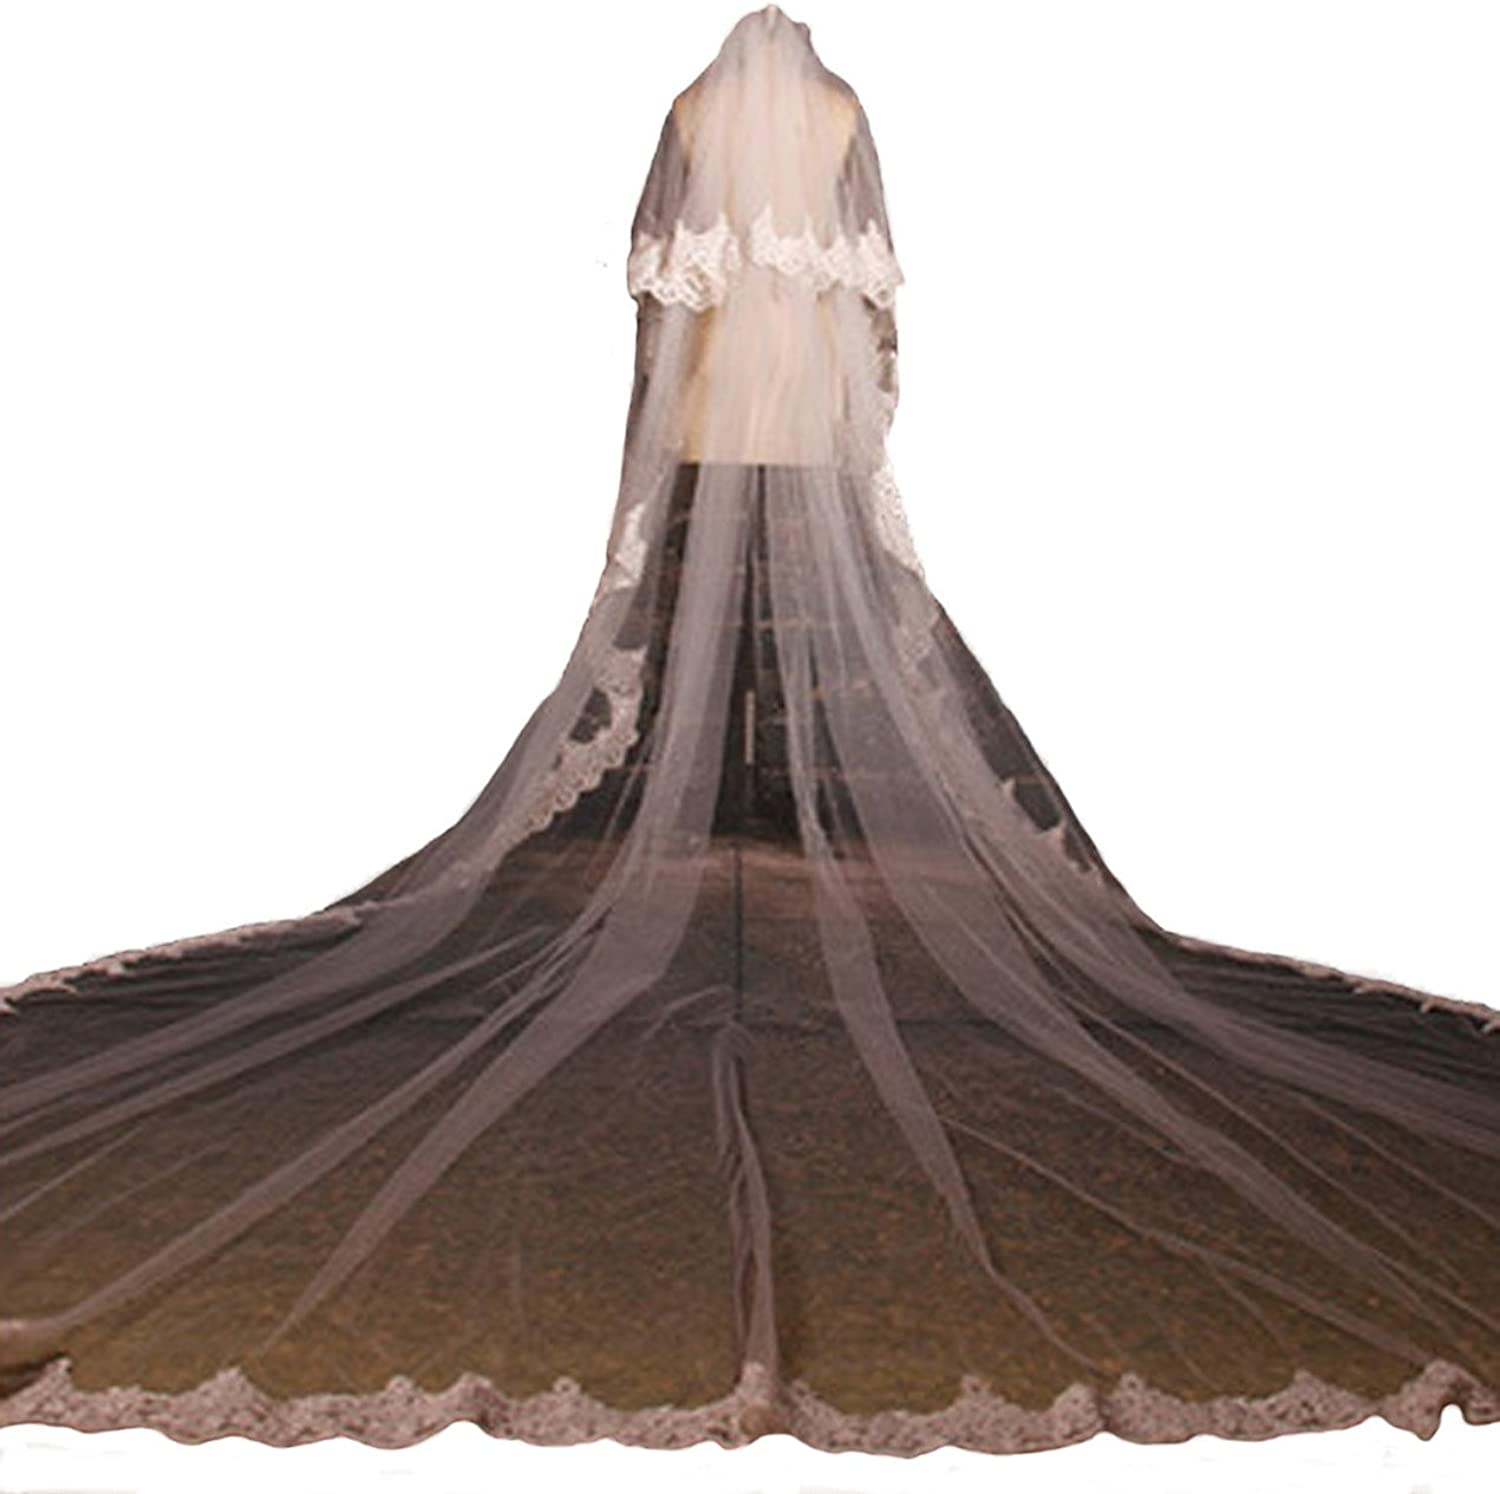 AliceHouse Women's 2T Long Lace Veil Cathedral Bridal Wedding Veils 11053